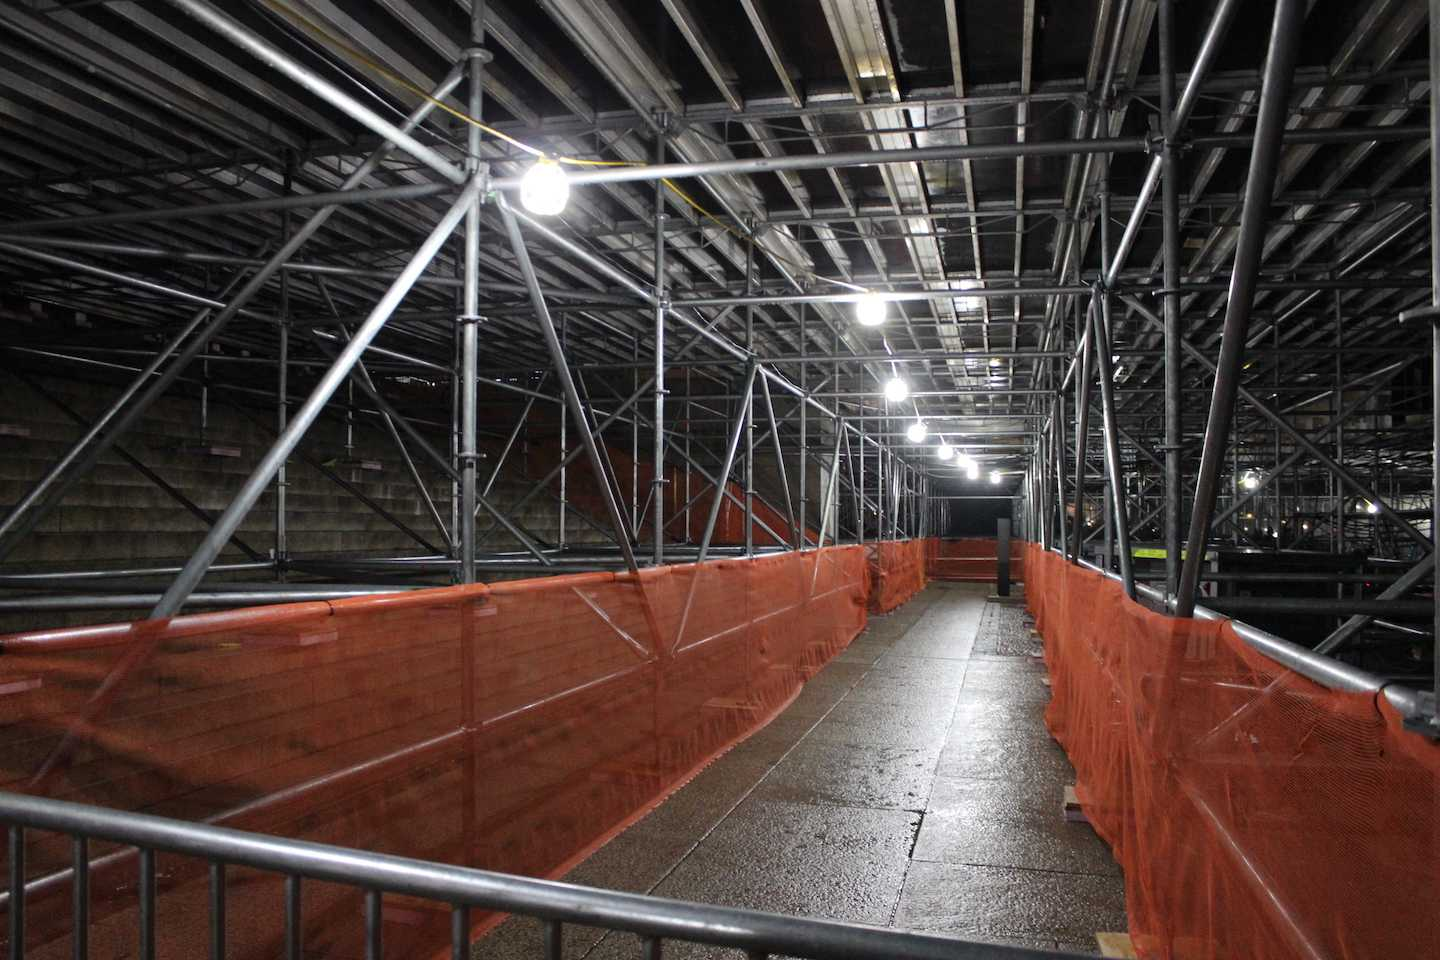 Underbelly+of+the+main+stage+of+the+Inaugural+Stage.+